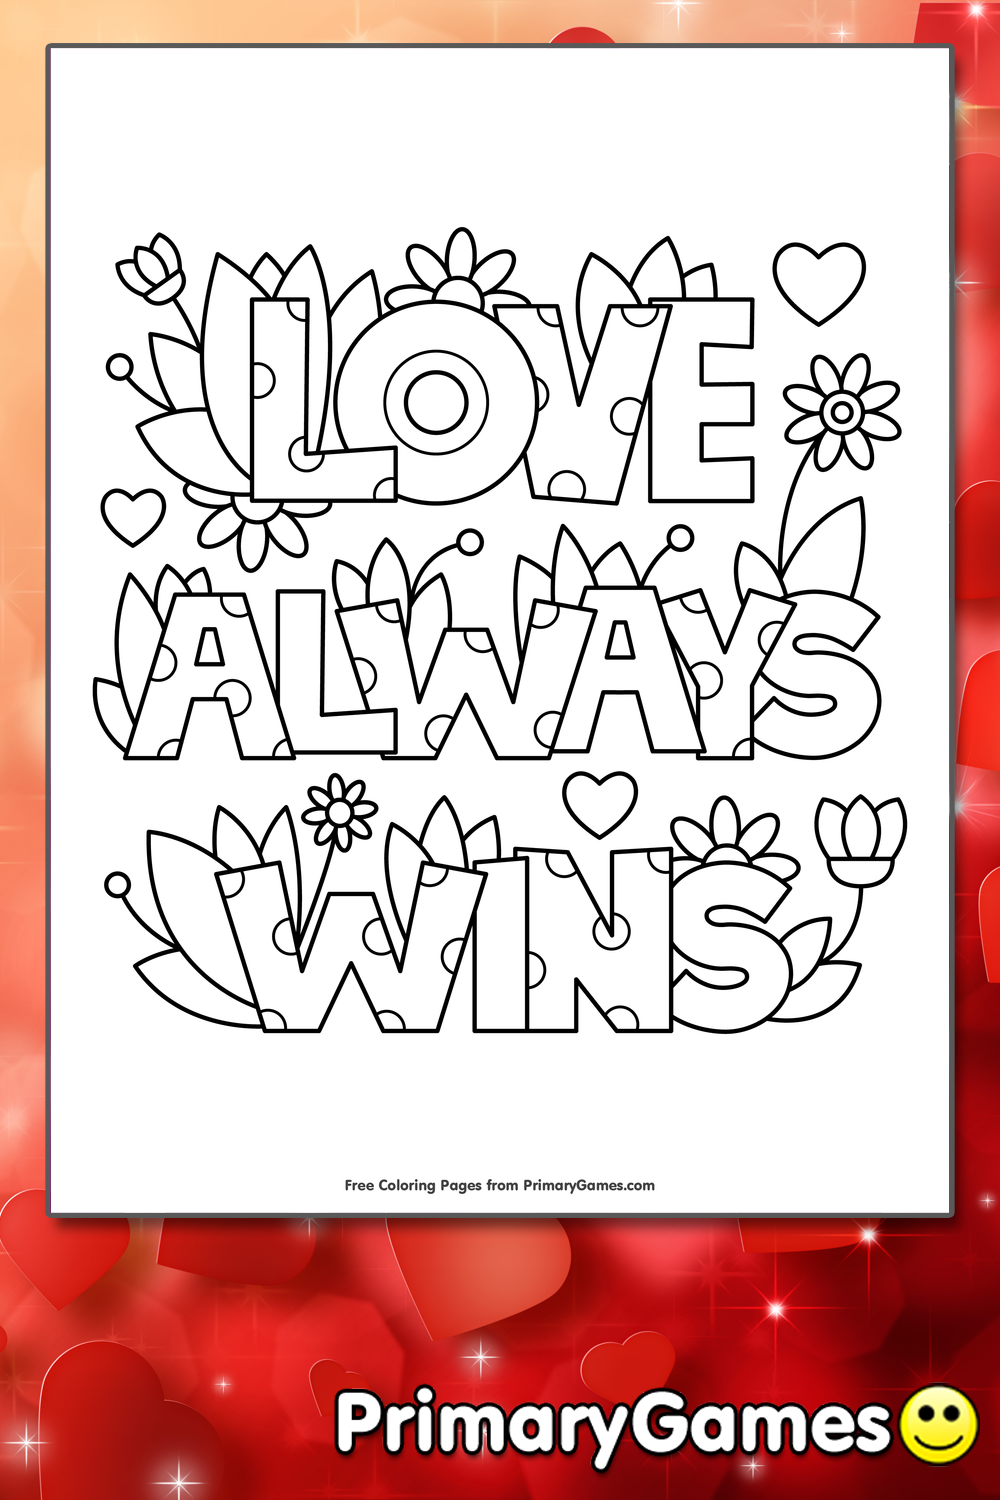 Love Always Wins Coloring Page